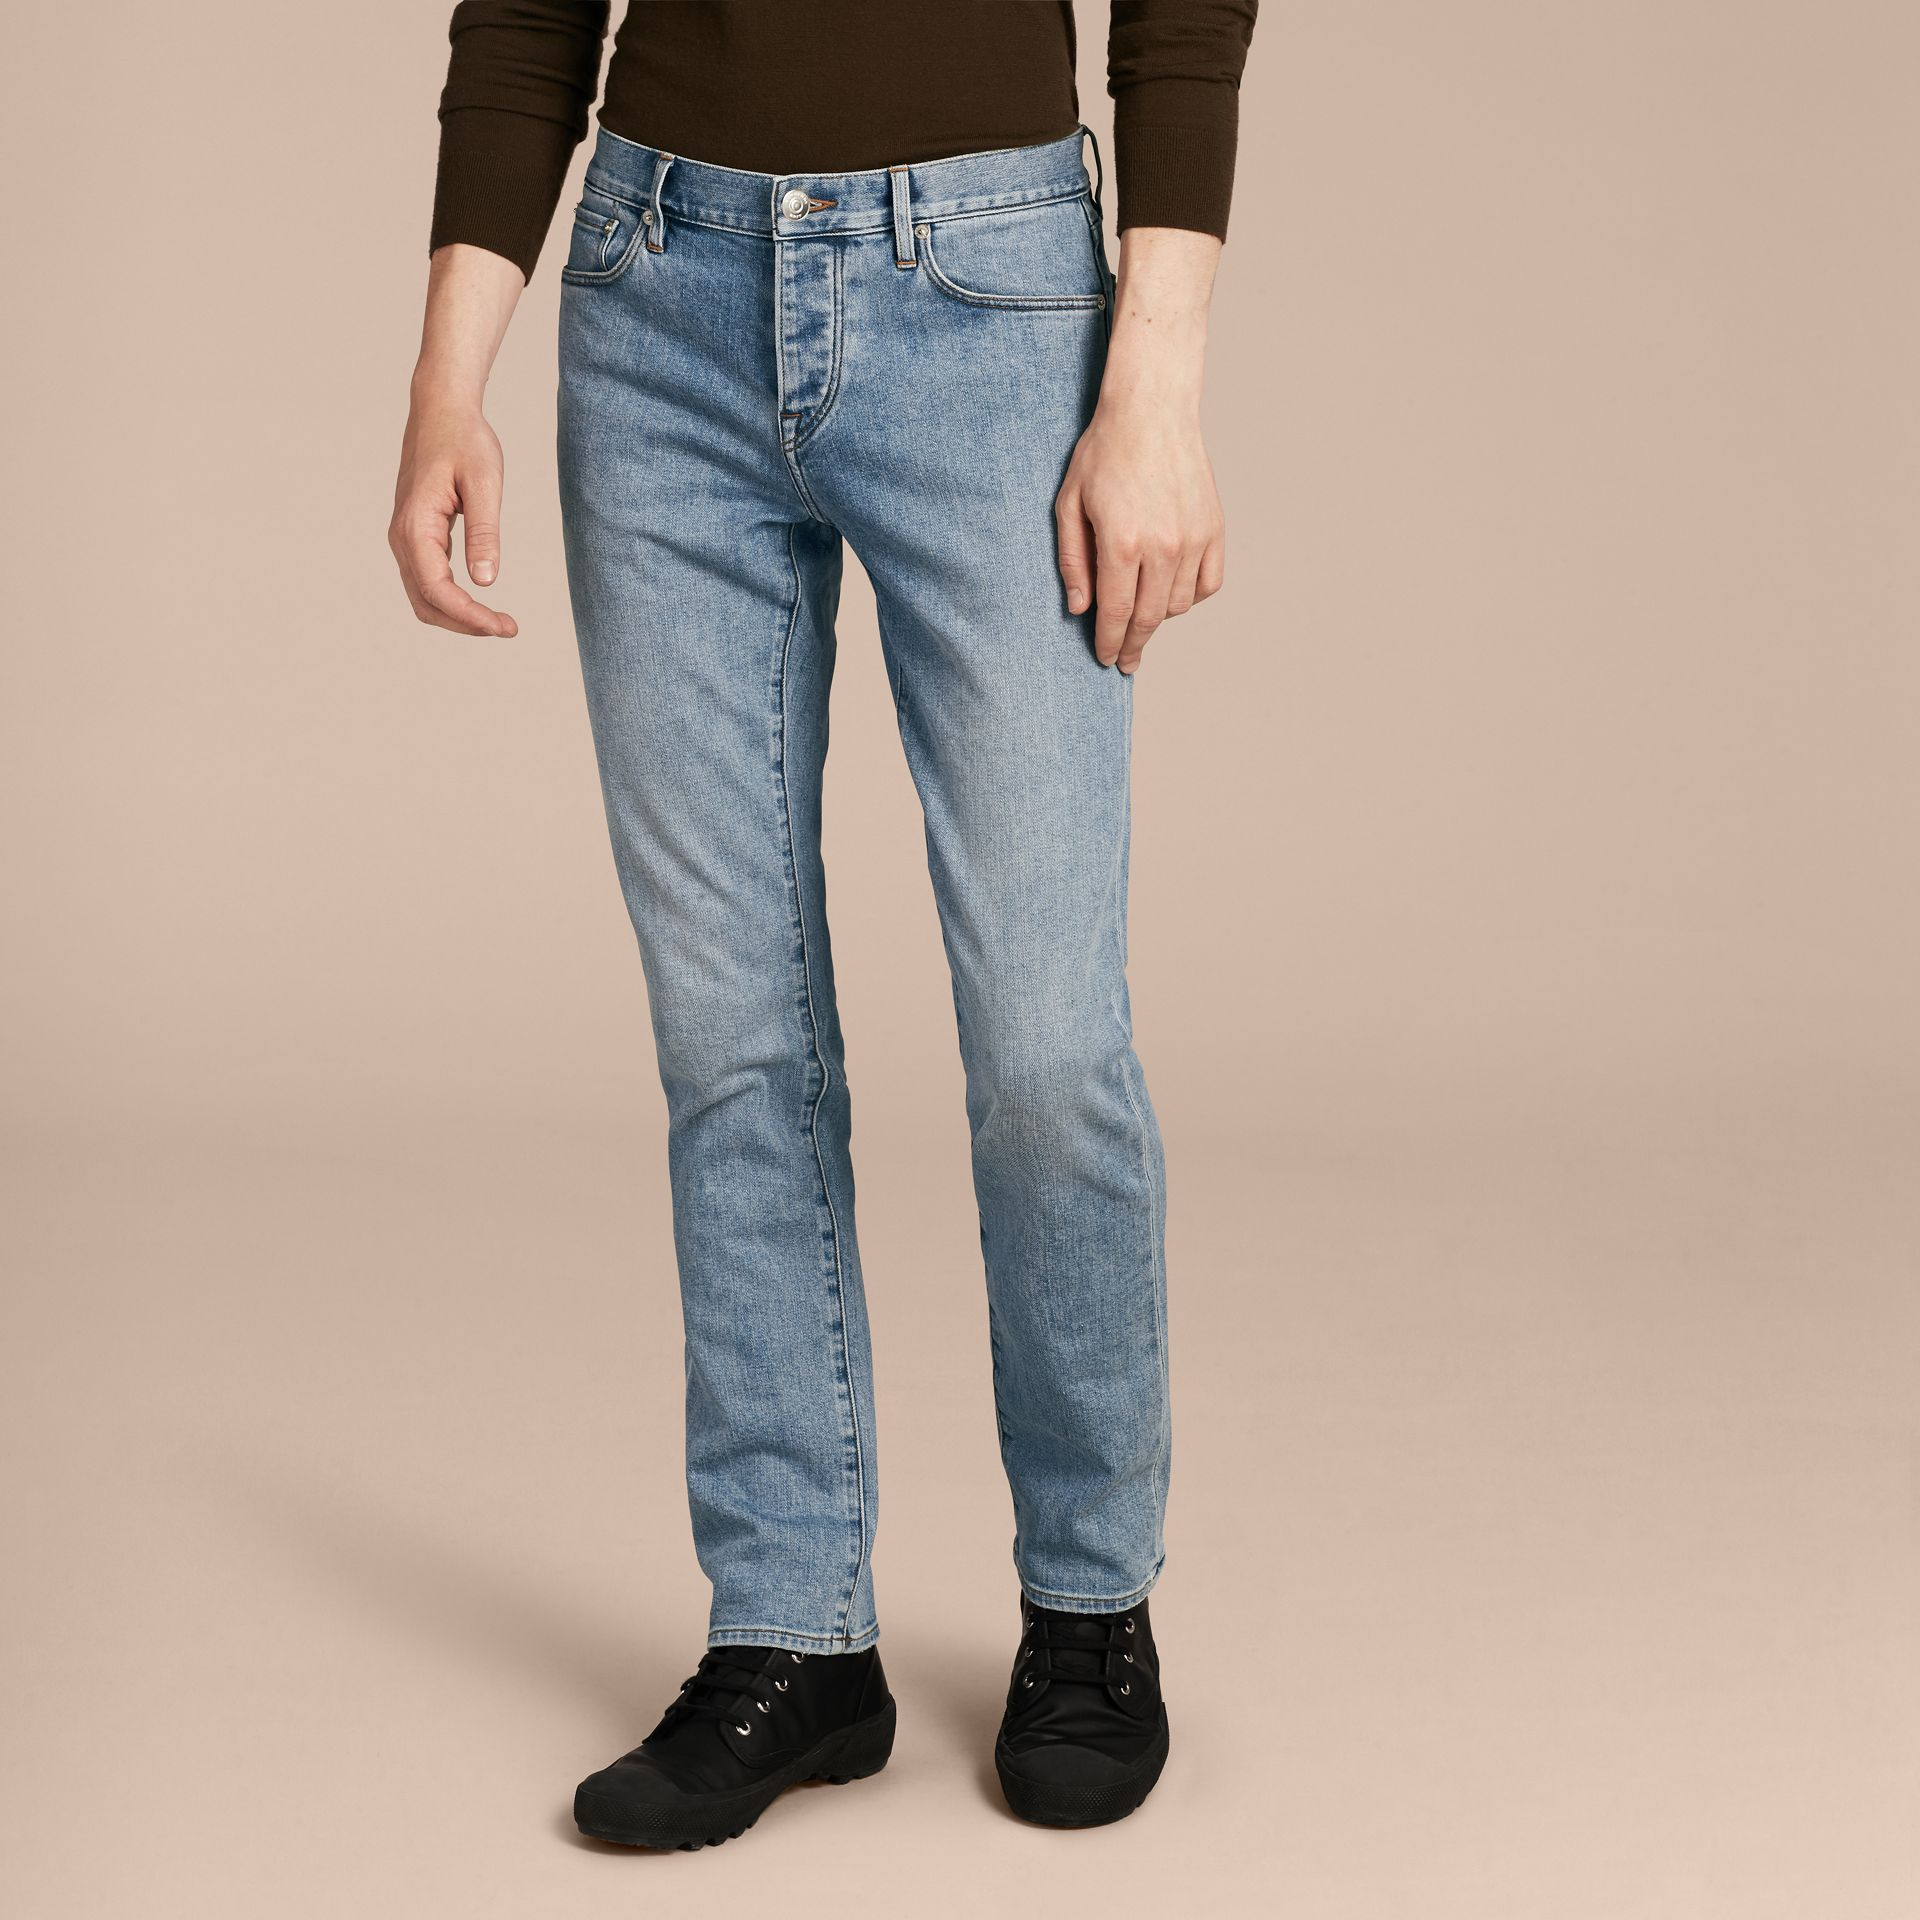 Jean stretch de coupe droite en denim japonais ultra-confortable - Homme | Burberry - photo de la galerie 7